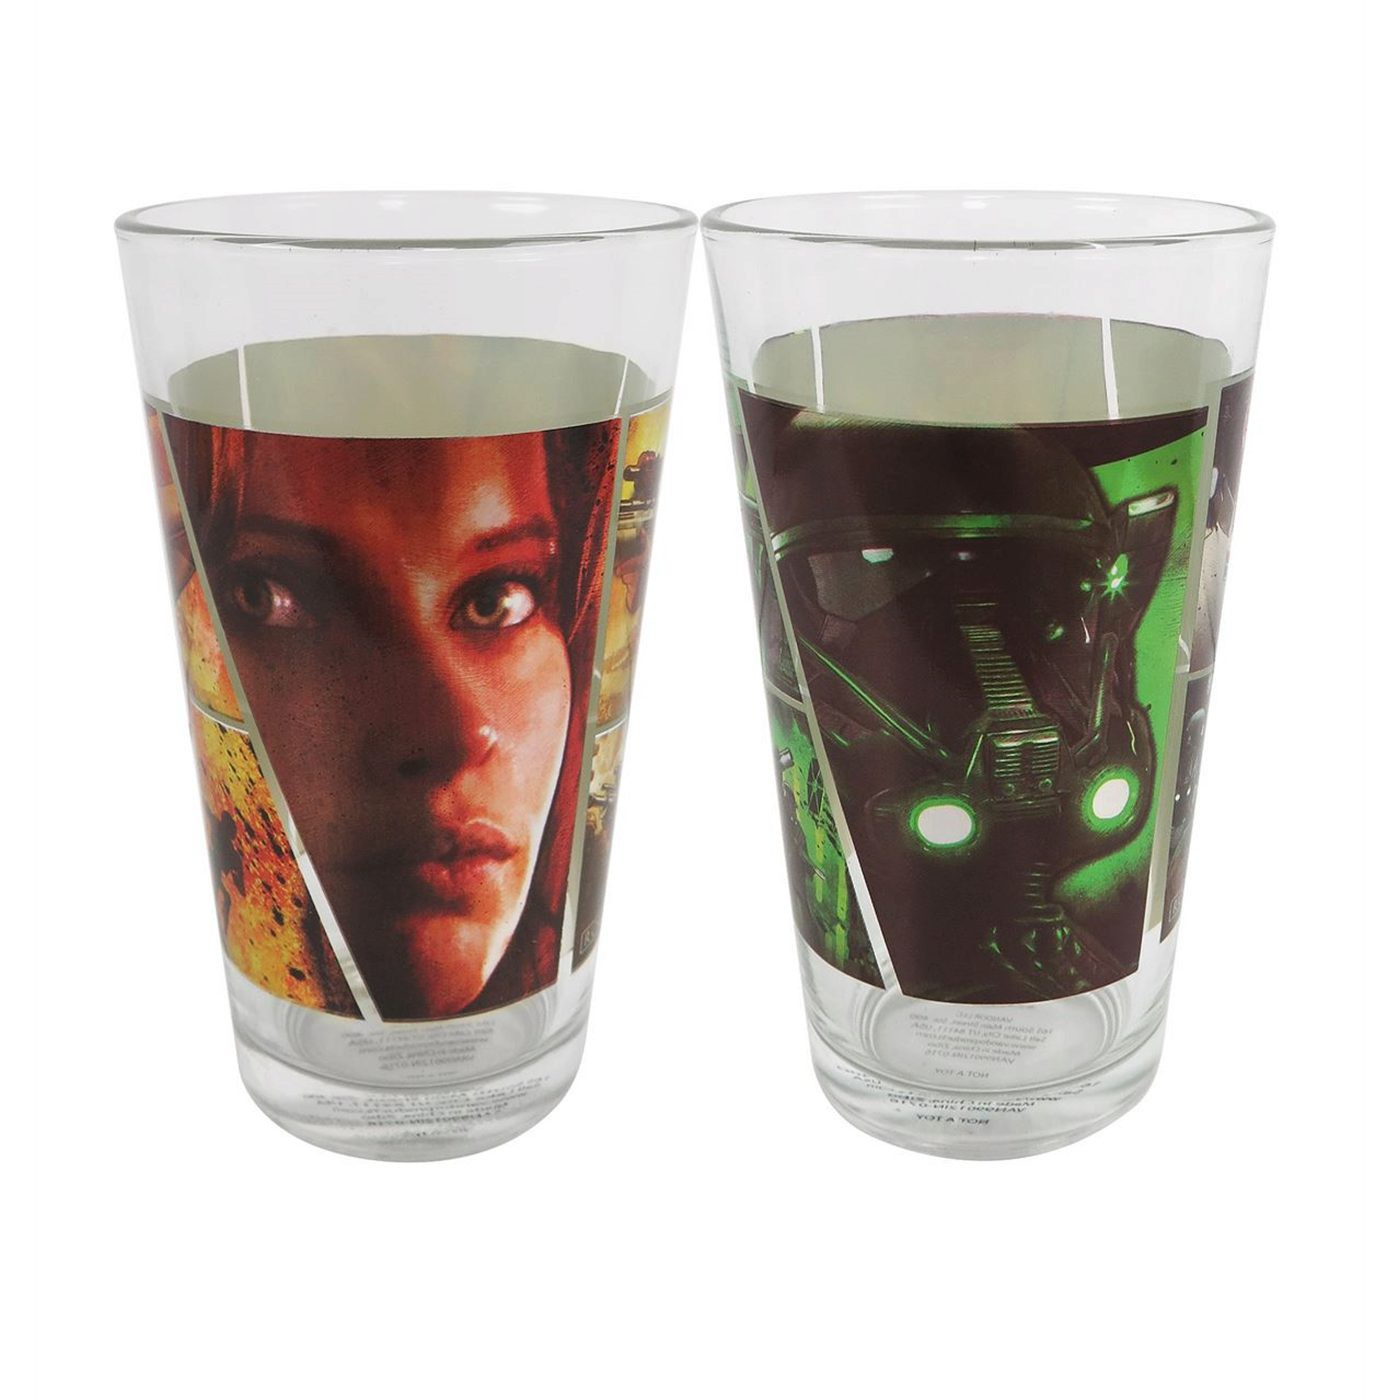 Star Wars Rogue One Image 16oz 2-Pack Glass Set